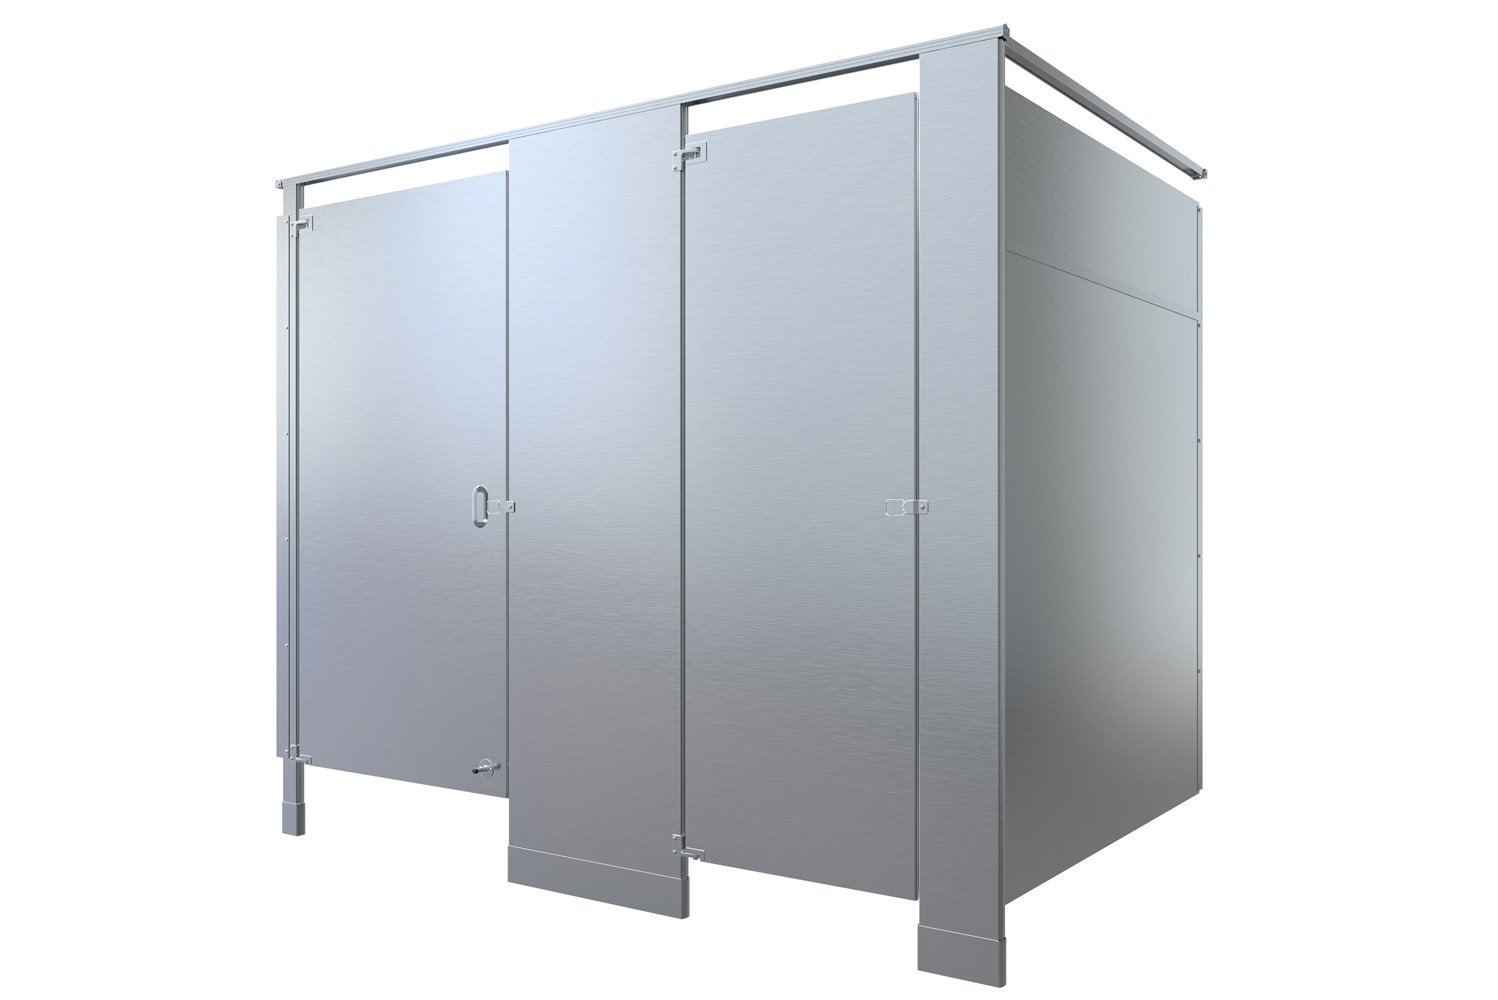 Bradley Corporation launched the Mills privacy partitions for restroom.